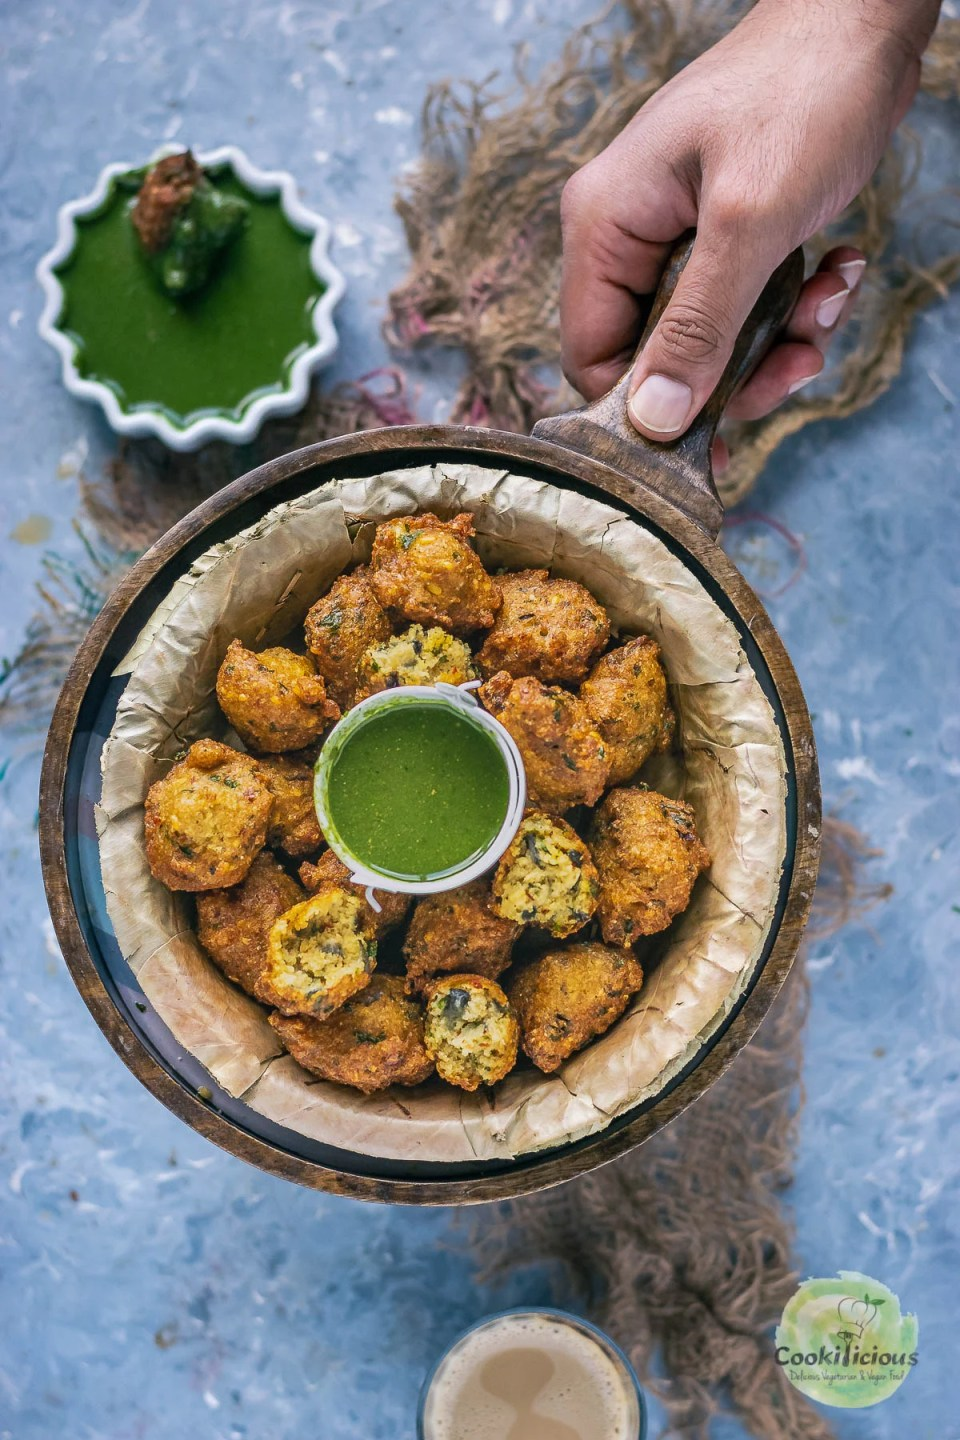 a hand holding a serving platter which has a bowl of Crispy Moong Dal Pakora (one of the popular easy vegan appetizers) and a bowl of green chutney next to it.